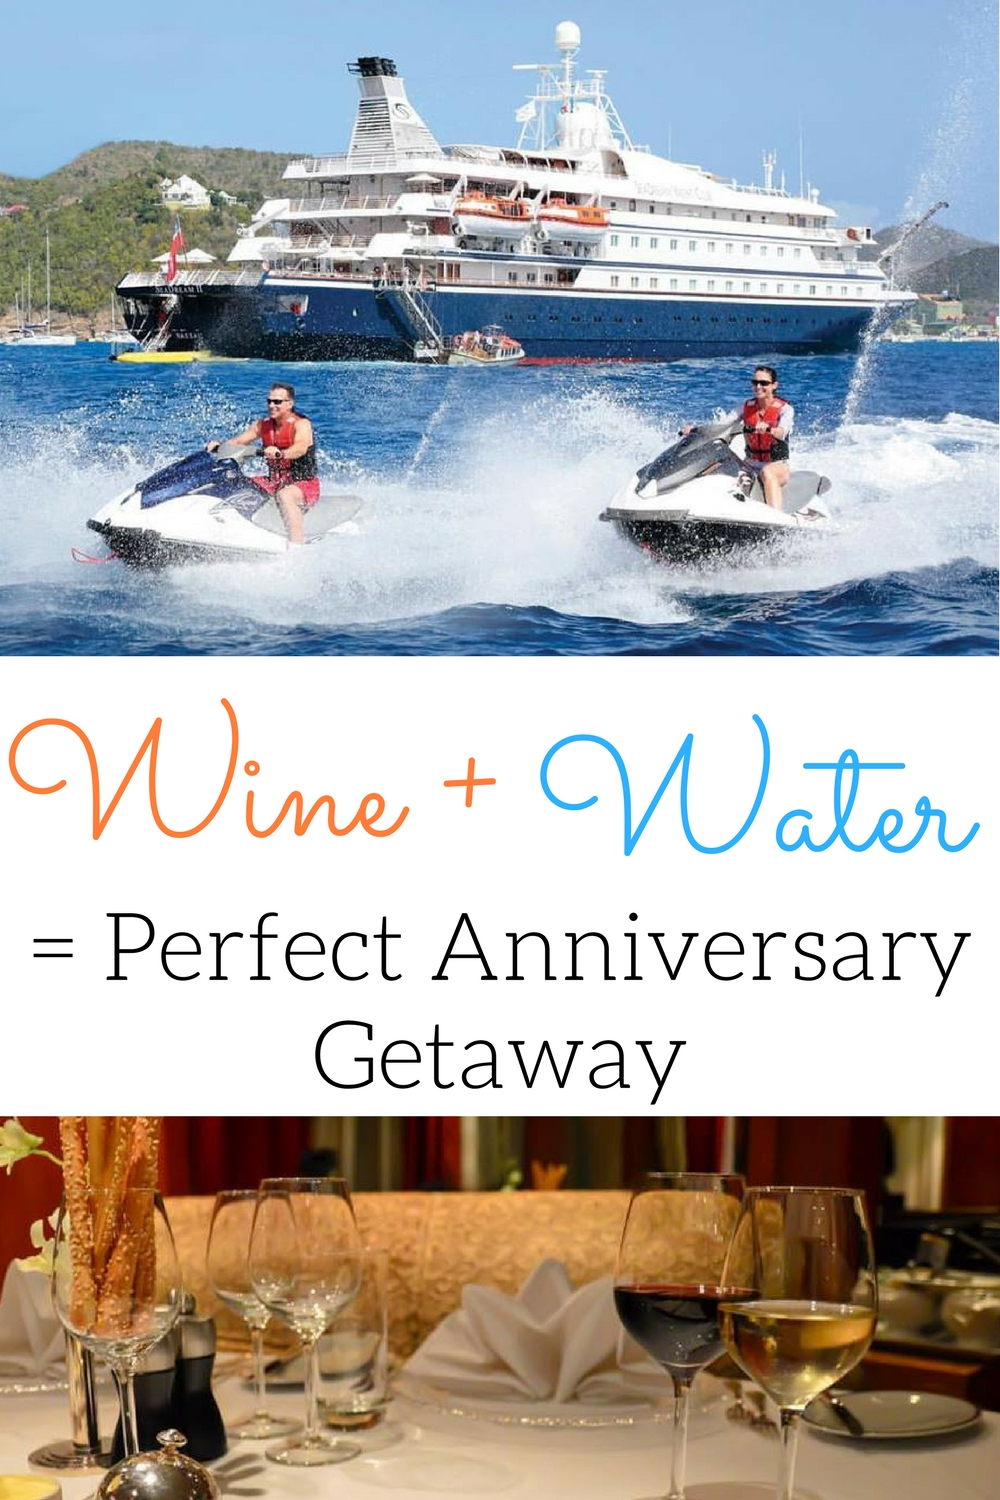 romantic wine cruise, Perfect anniversary getaway idea, wine water romance, romantic Caribbean sailing, wine and sailing adventure, romantic Caribbean adventure, Schug Carneros Estate Winery sail, SeaDream Yacht Club Wine Voyages, SeaDream Yacht Club and Schug Carneros Estate Winery